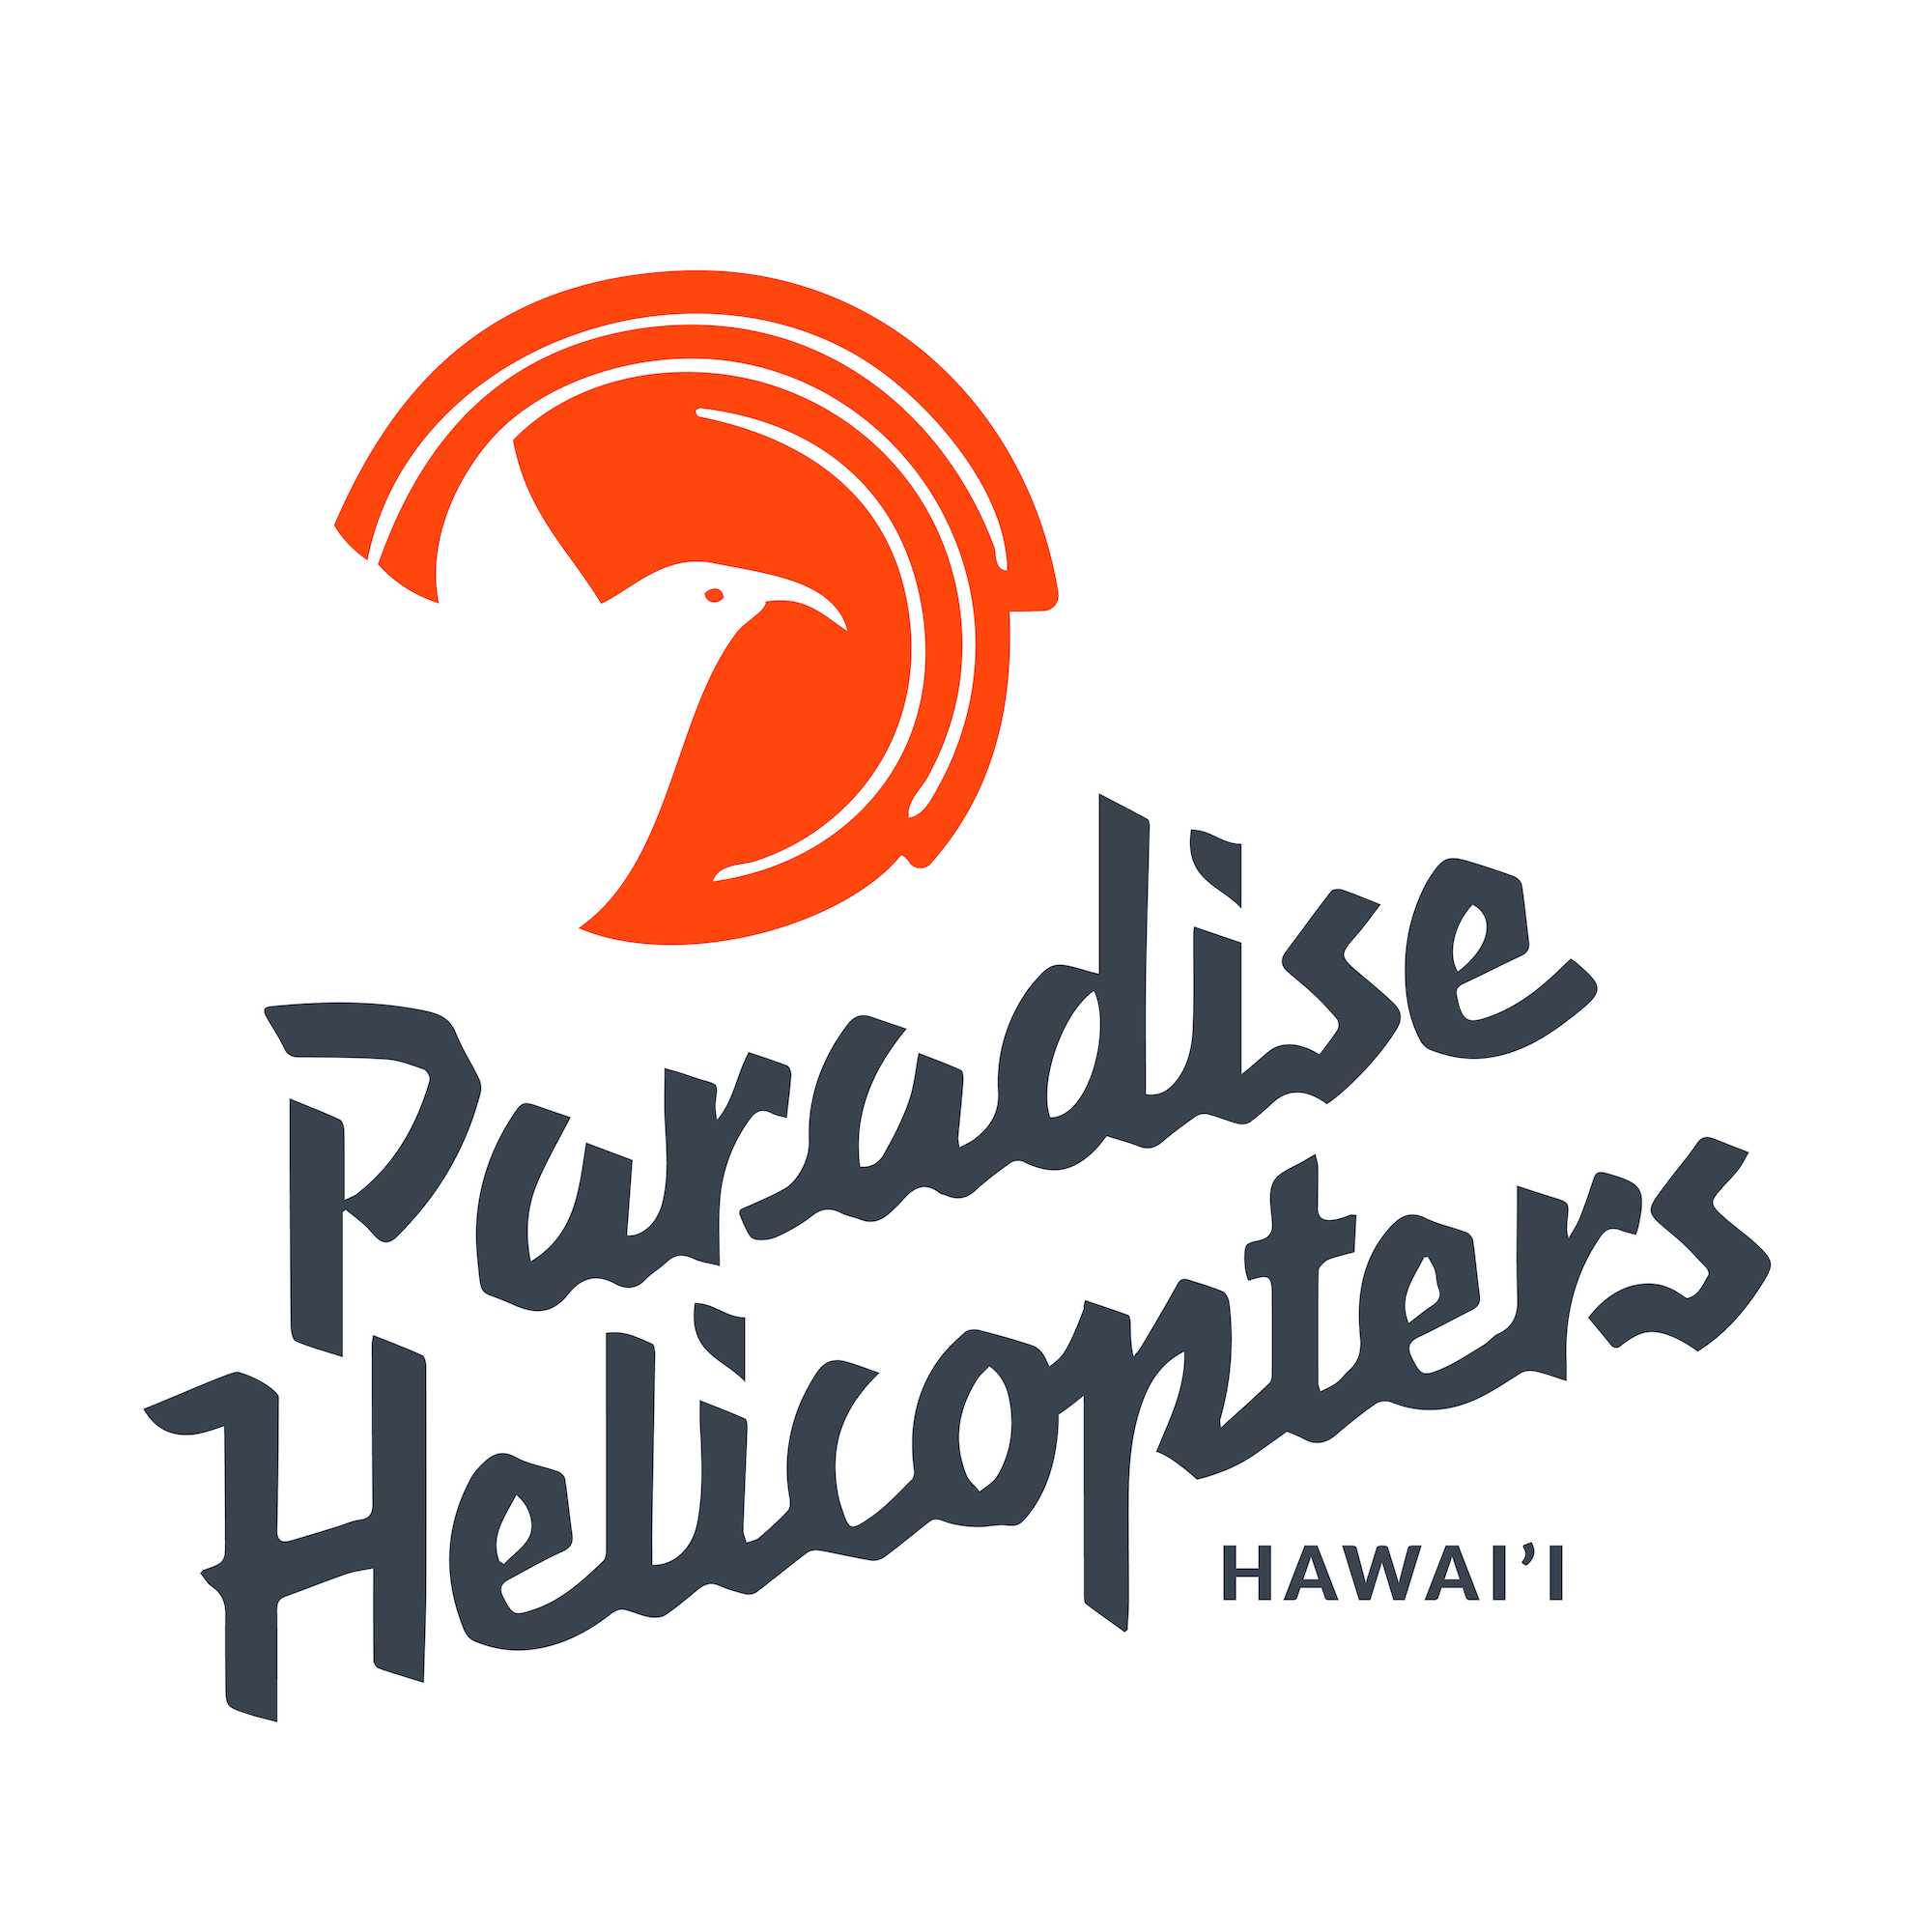 paradise helicopters logo small